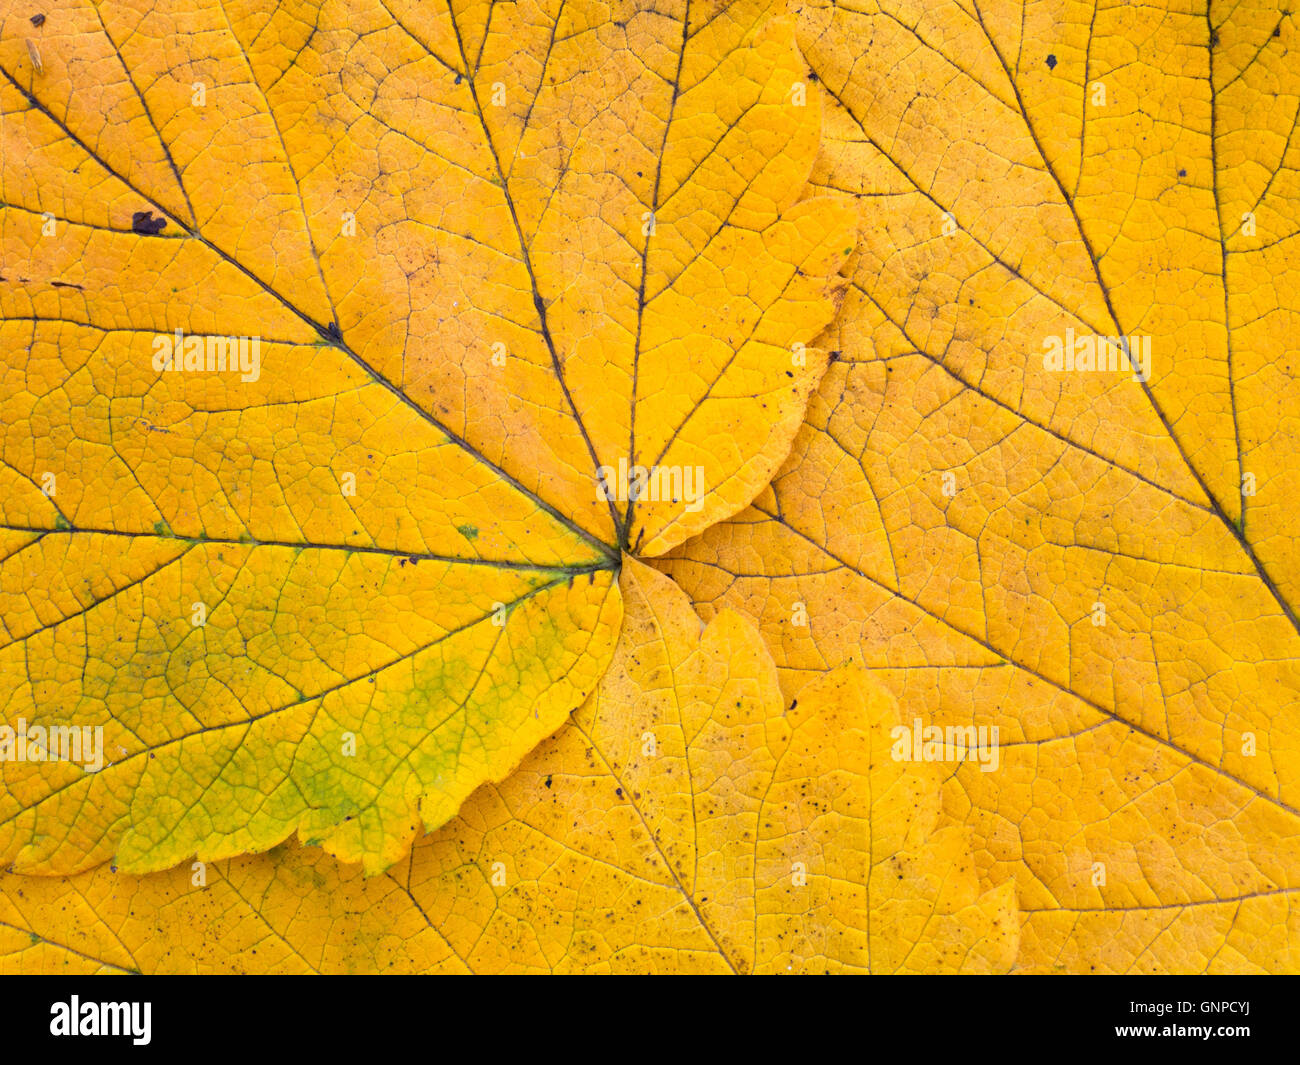 Bright yellow autumn leaves with veins closeup background - Stock Image